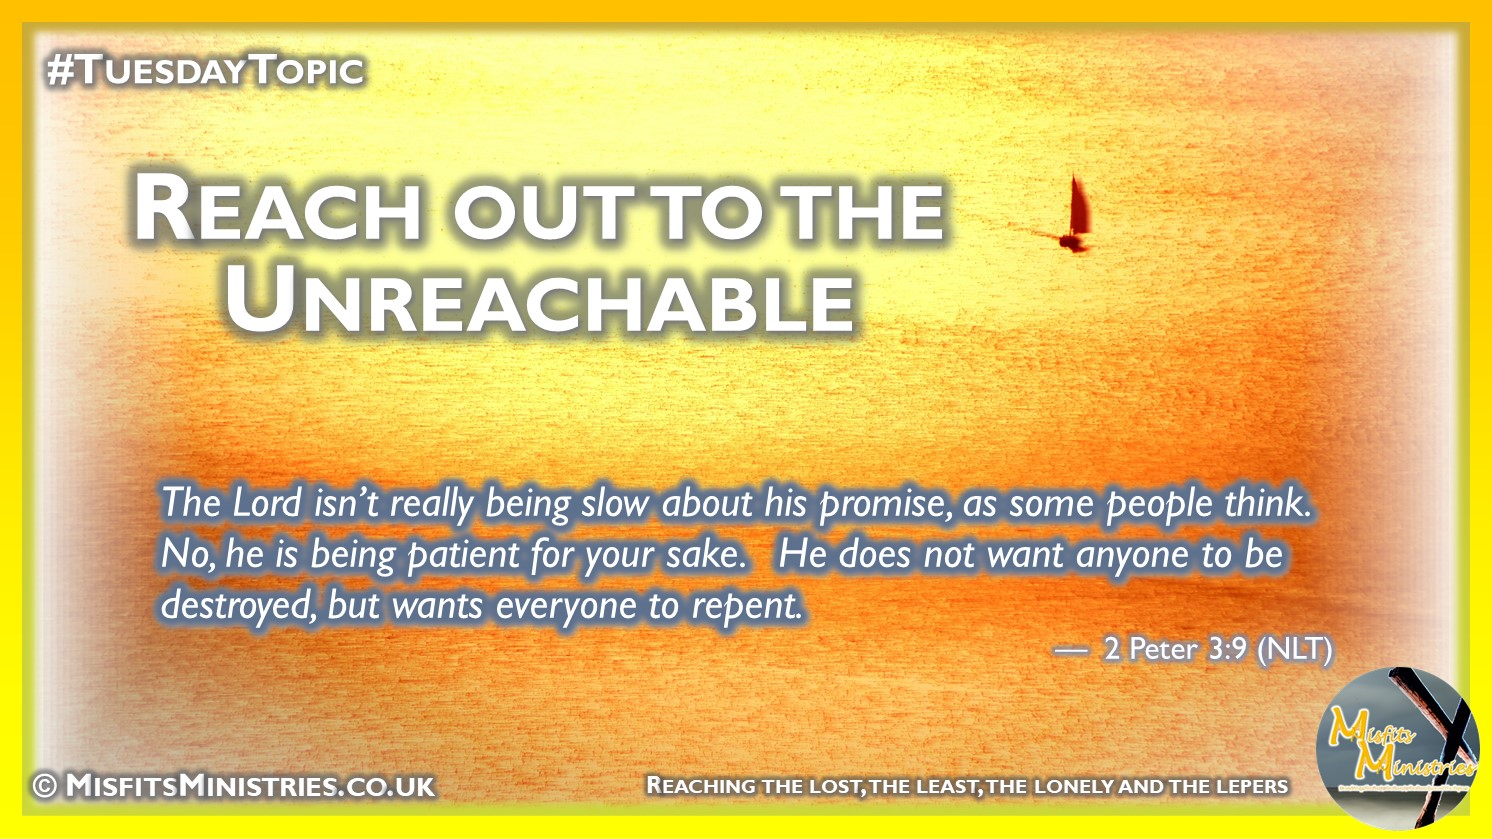 Tuesday Topic 2021wk23 - Reach out to the unreachable